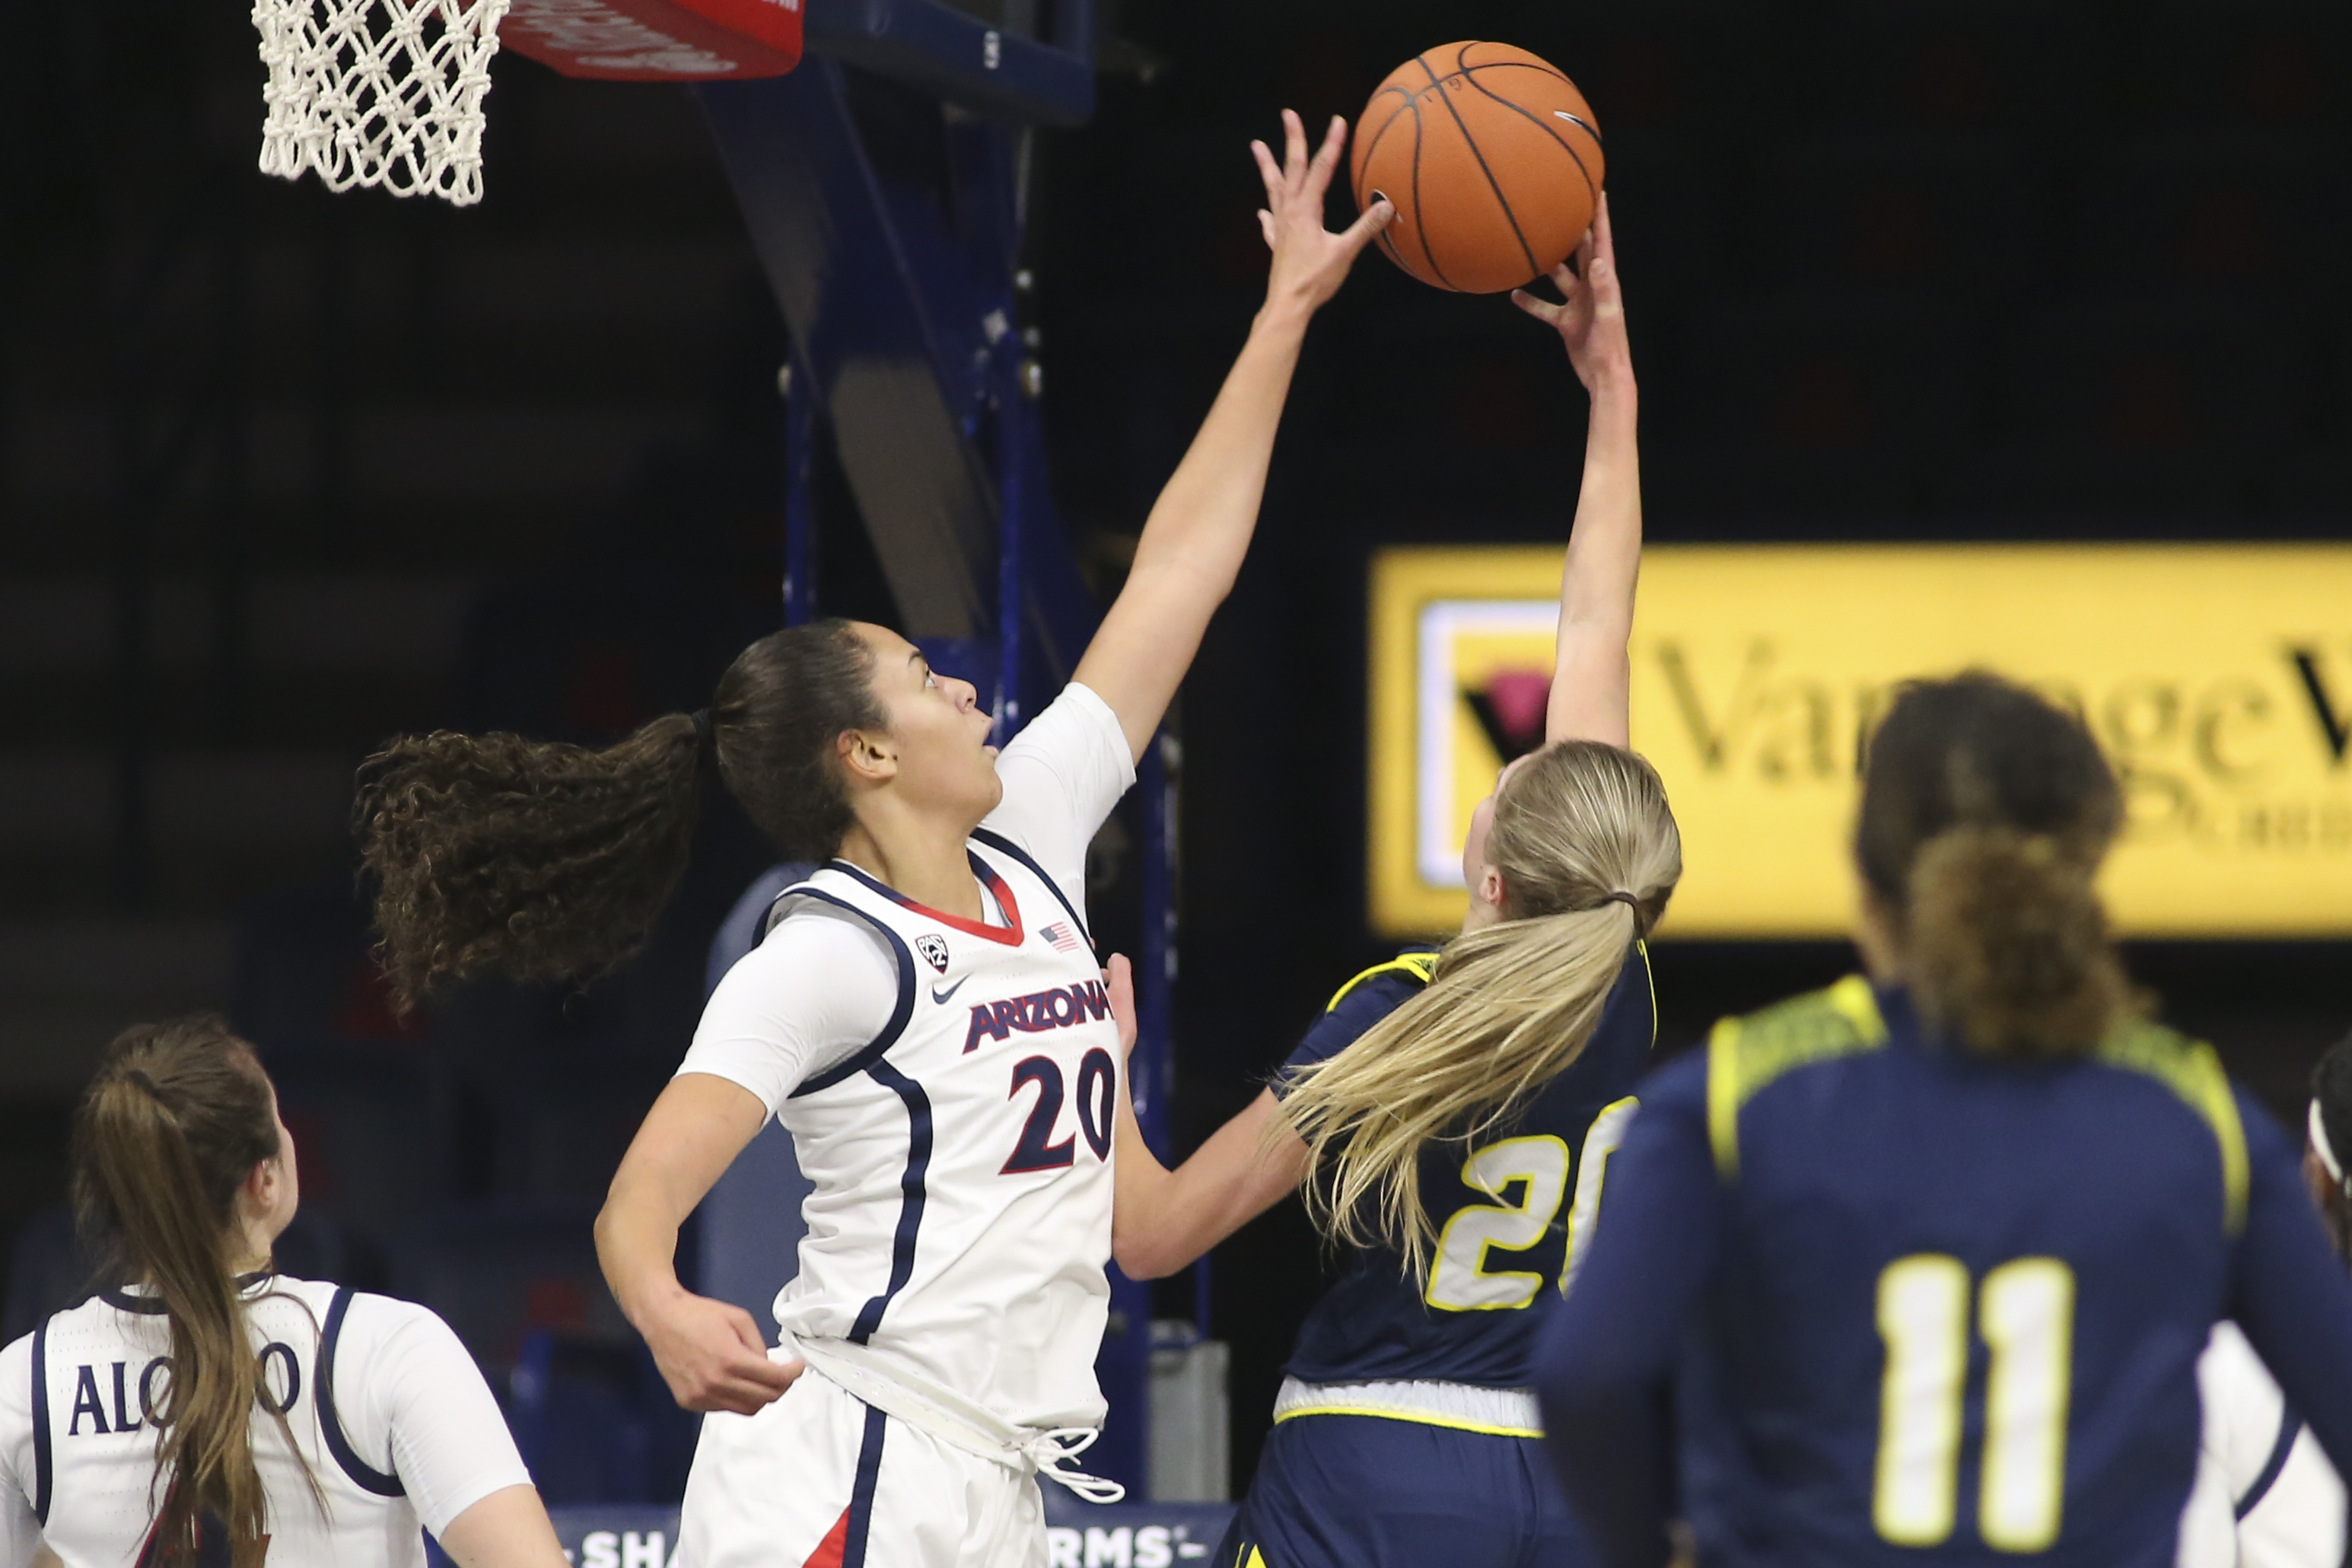 COLLEGE BASKETBALL: DEC 21 Women's Northern Arizona at Arizona